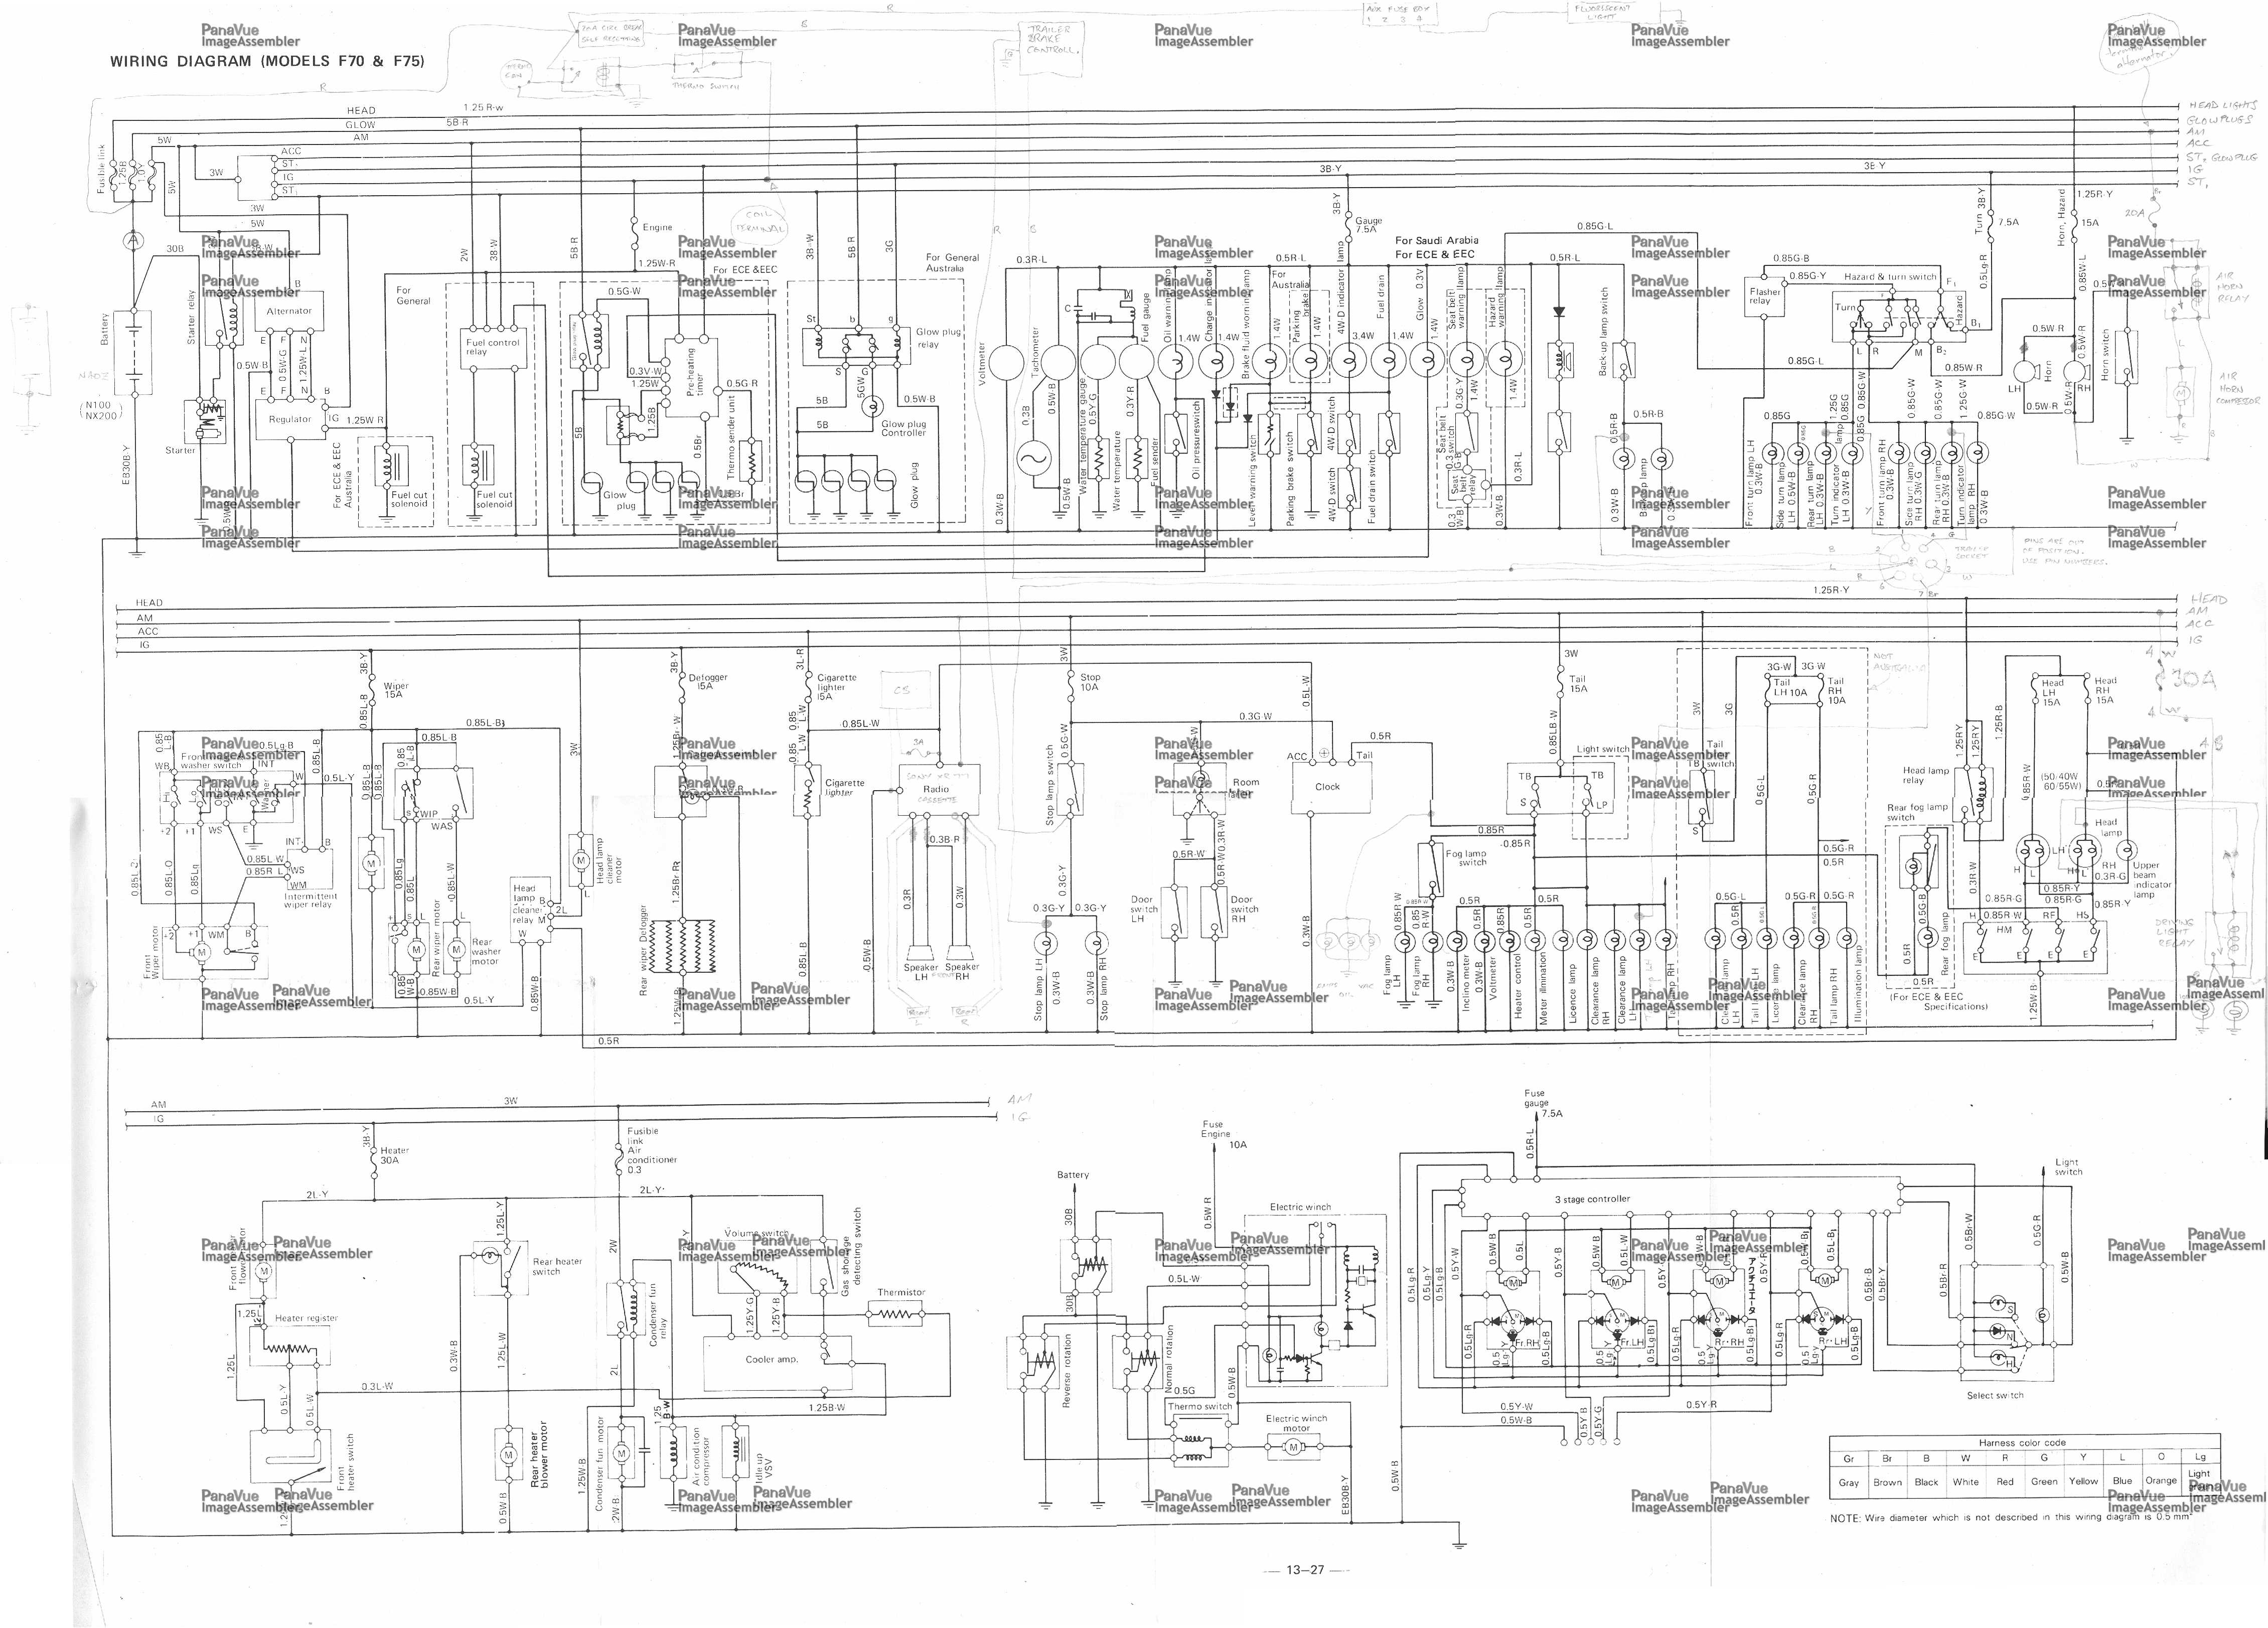 toyota forklift error code 61 how to clear cat mitsubishi forklift rh verrillos com 3245 toyota forklift wiring diagrams  [ 4521 x 3245 Pixel ]